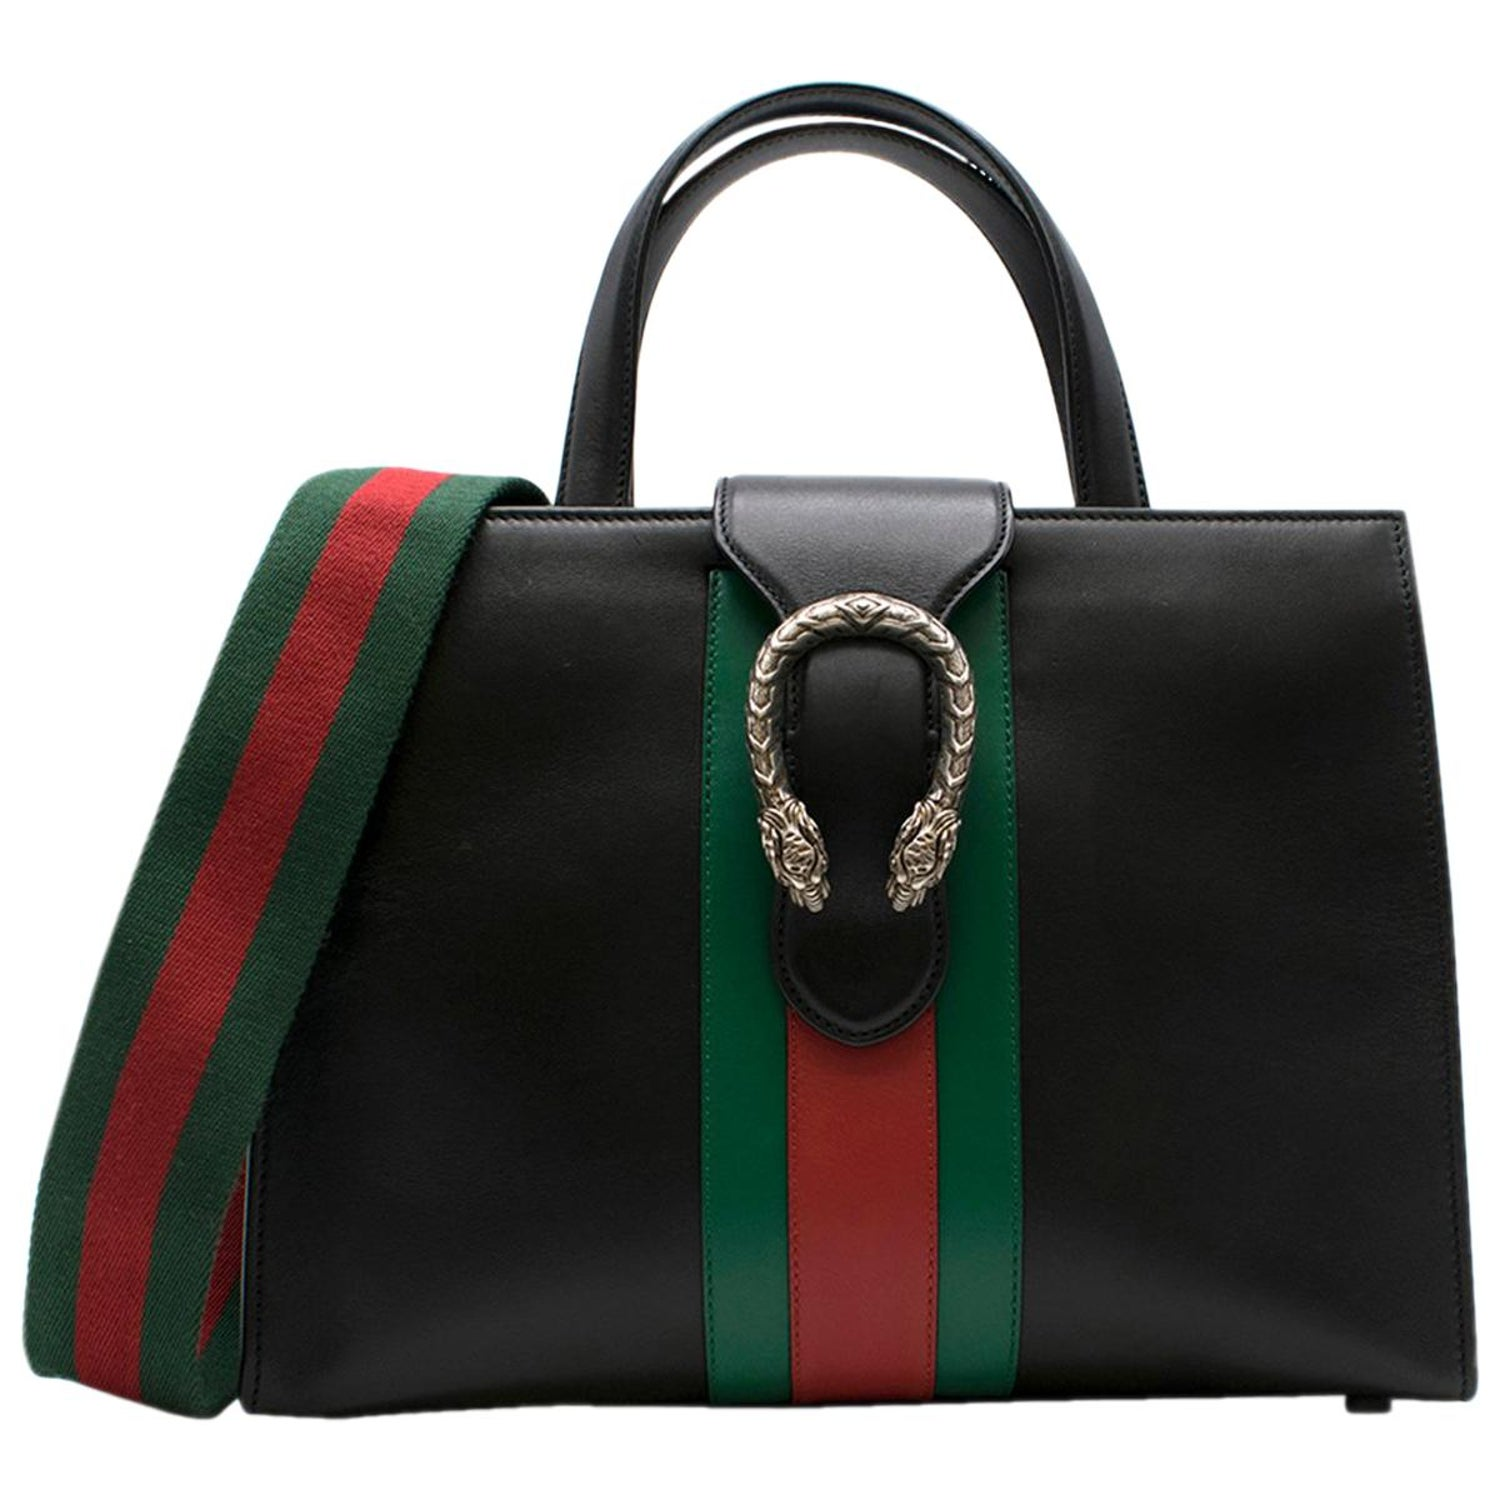 a75029730dff Gucci Dionysus Medium Web-striped leather top-handle bag at 1stdibs